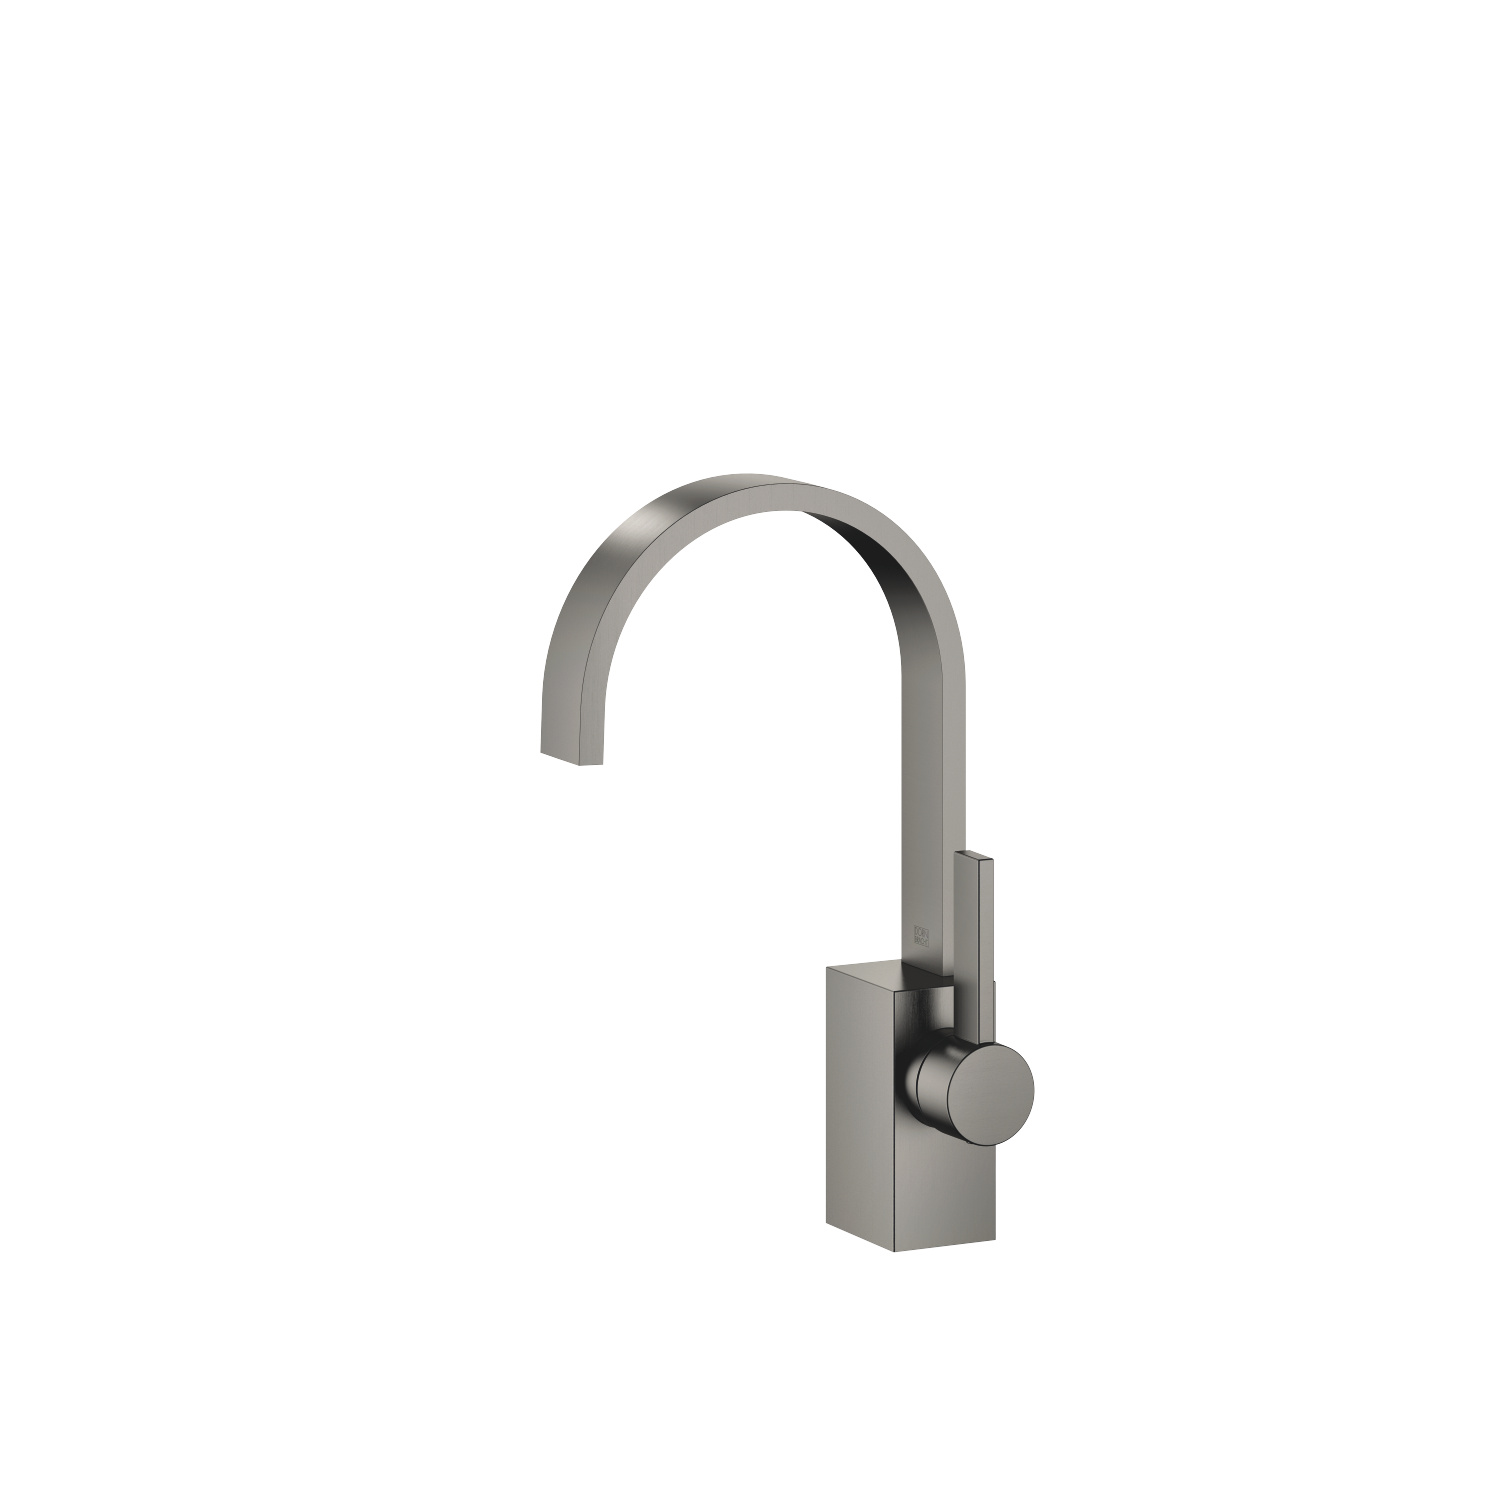 Single-lever basin mixer without pop-up waste - Dark Platinum matt - 33 521 782-99